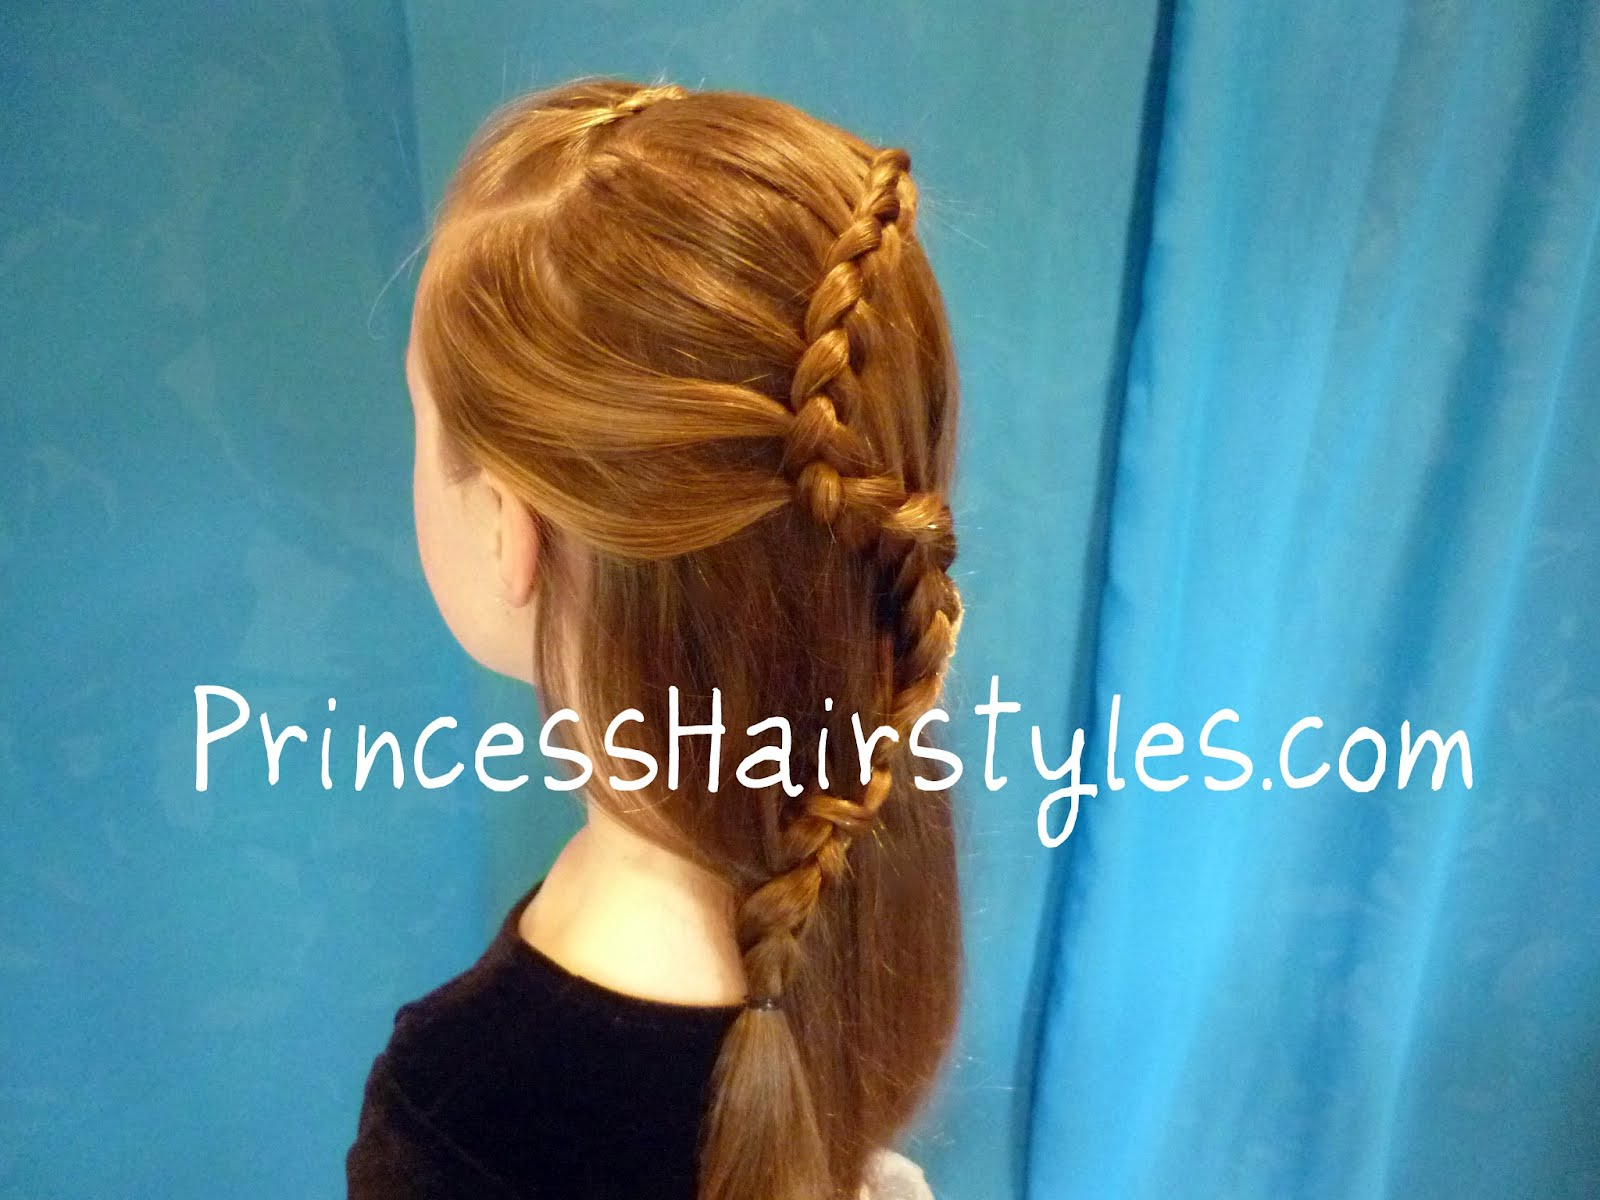 Hairstyles With Braids Tumblr: Hairstyles For Girls - Princess